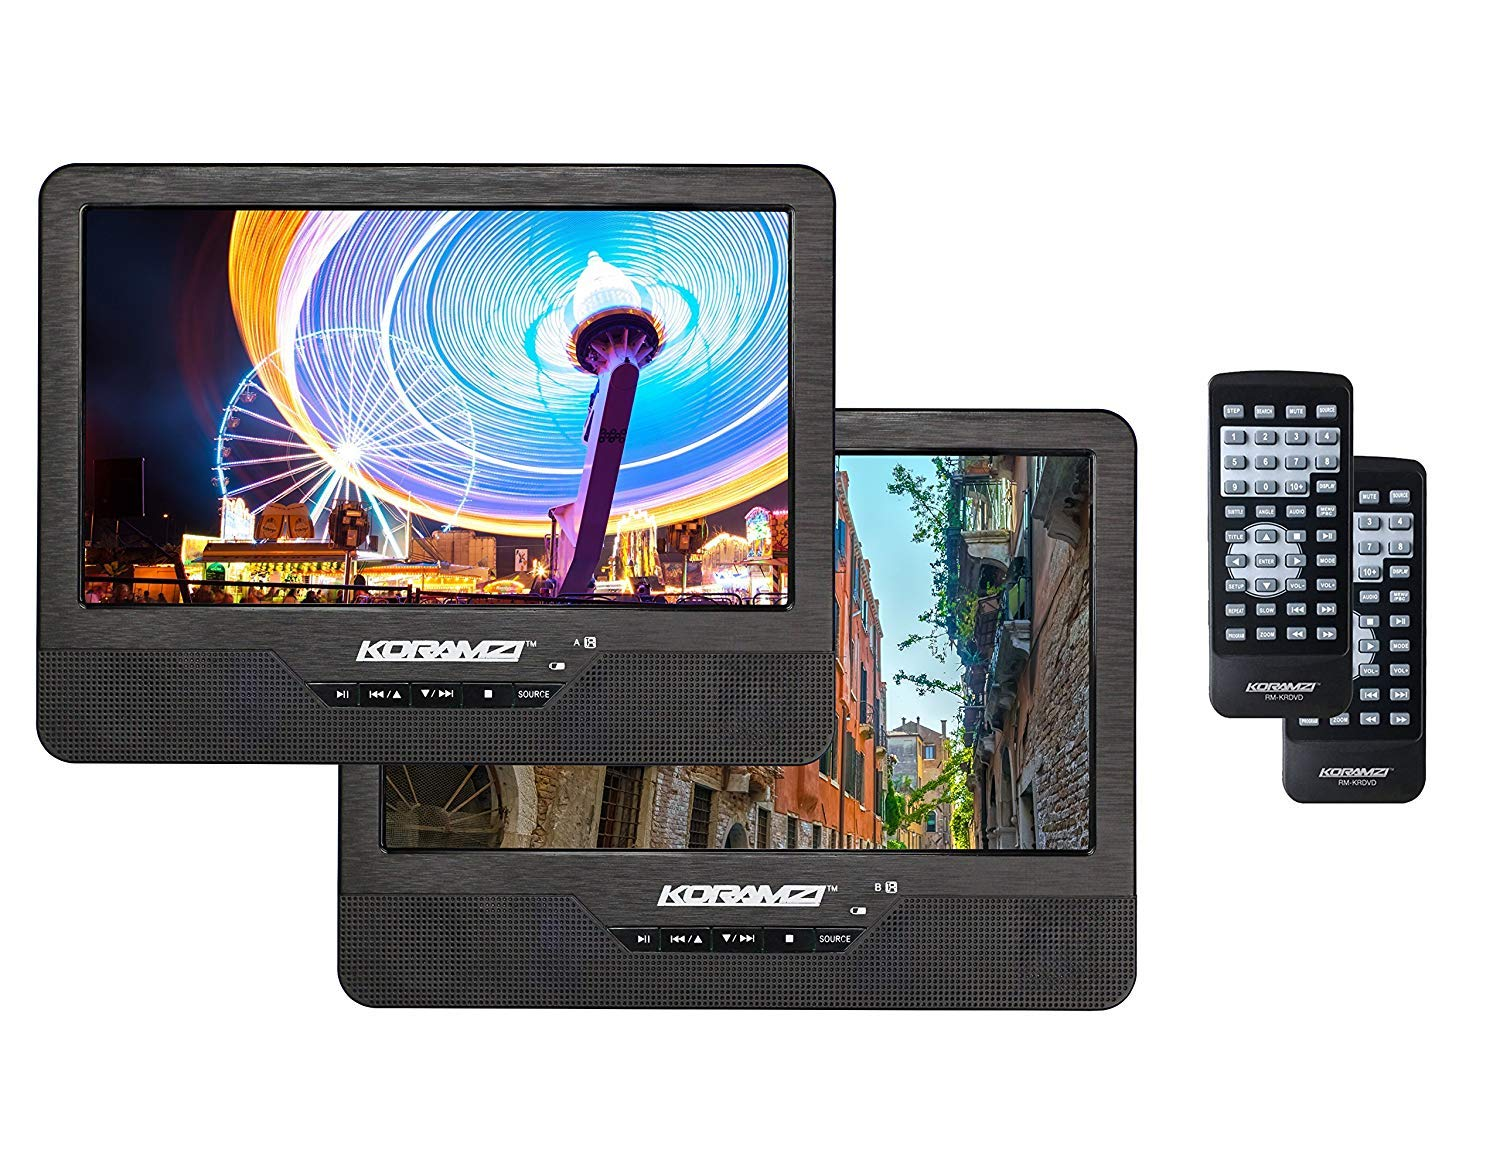 Koramzi Portable 9'' Dual Screen Dual DVD Player W Rechargeable Battery/AC Adapter/AV in/USB &SD Card Reader/Remote Control/Car Adapter/IR Transmitter Ready/USB/Headrest Mounting Kit by Koramzi